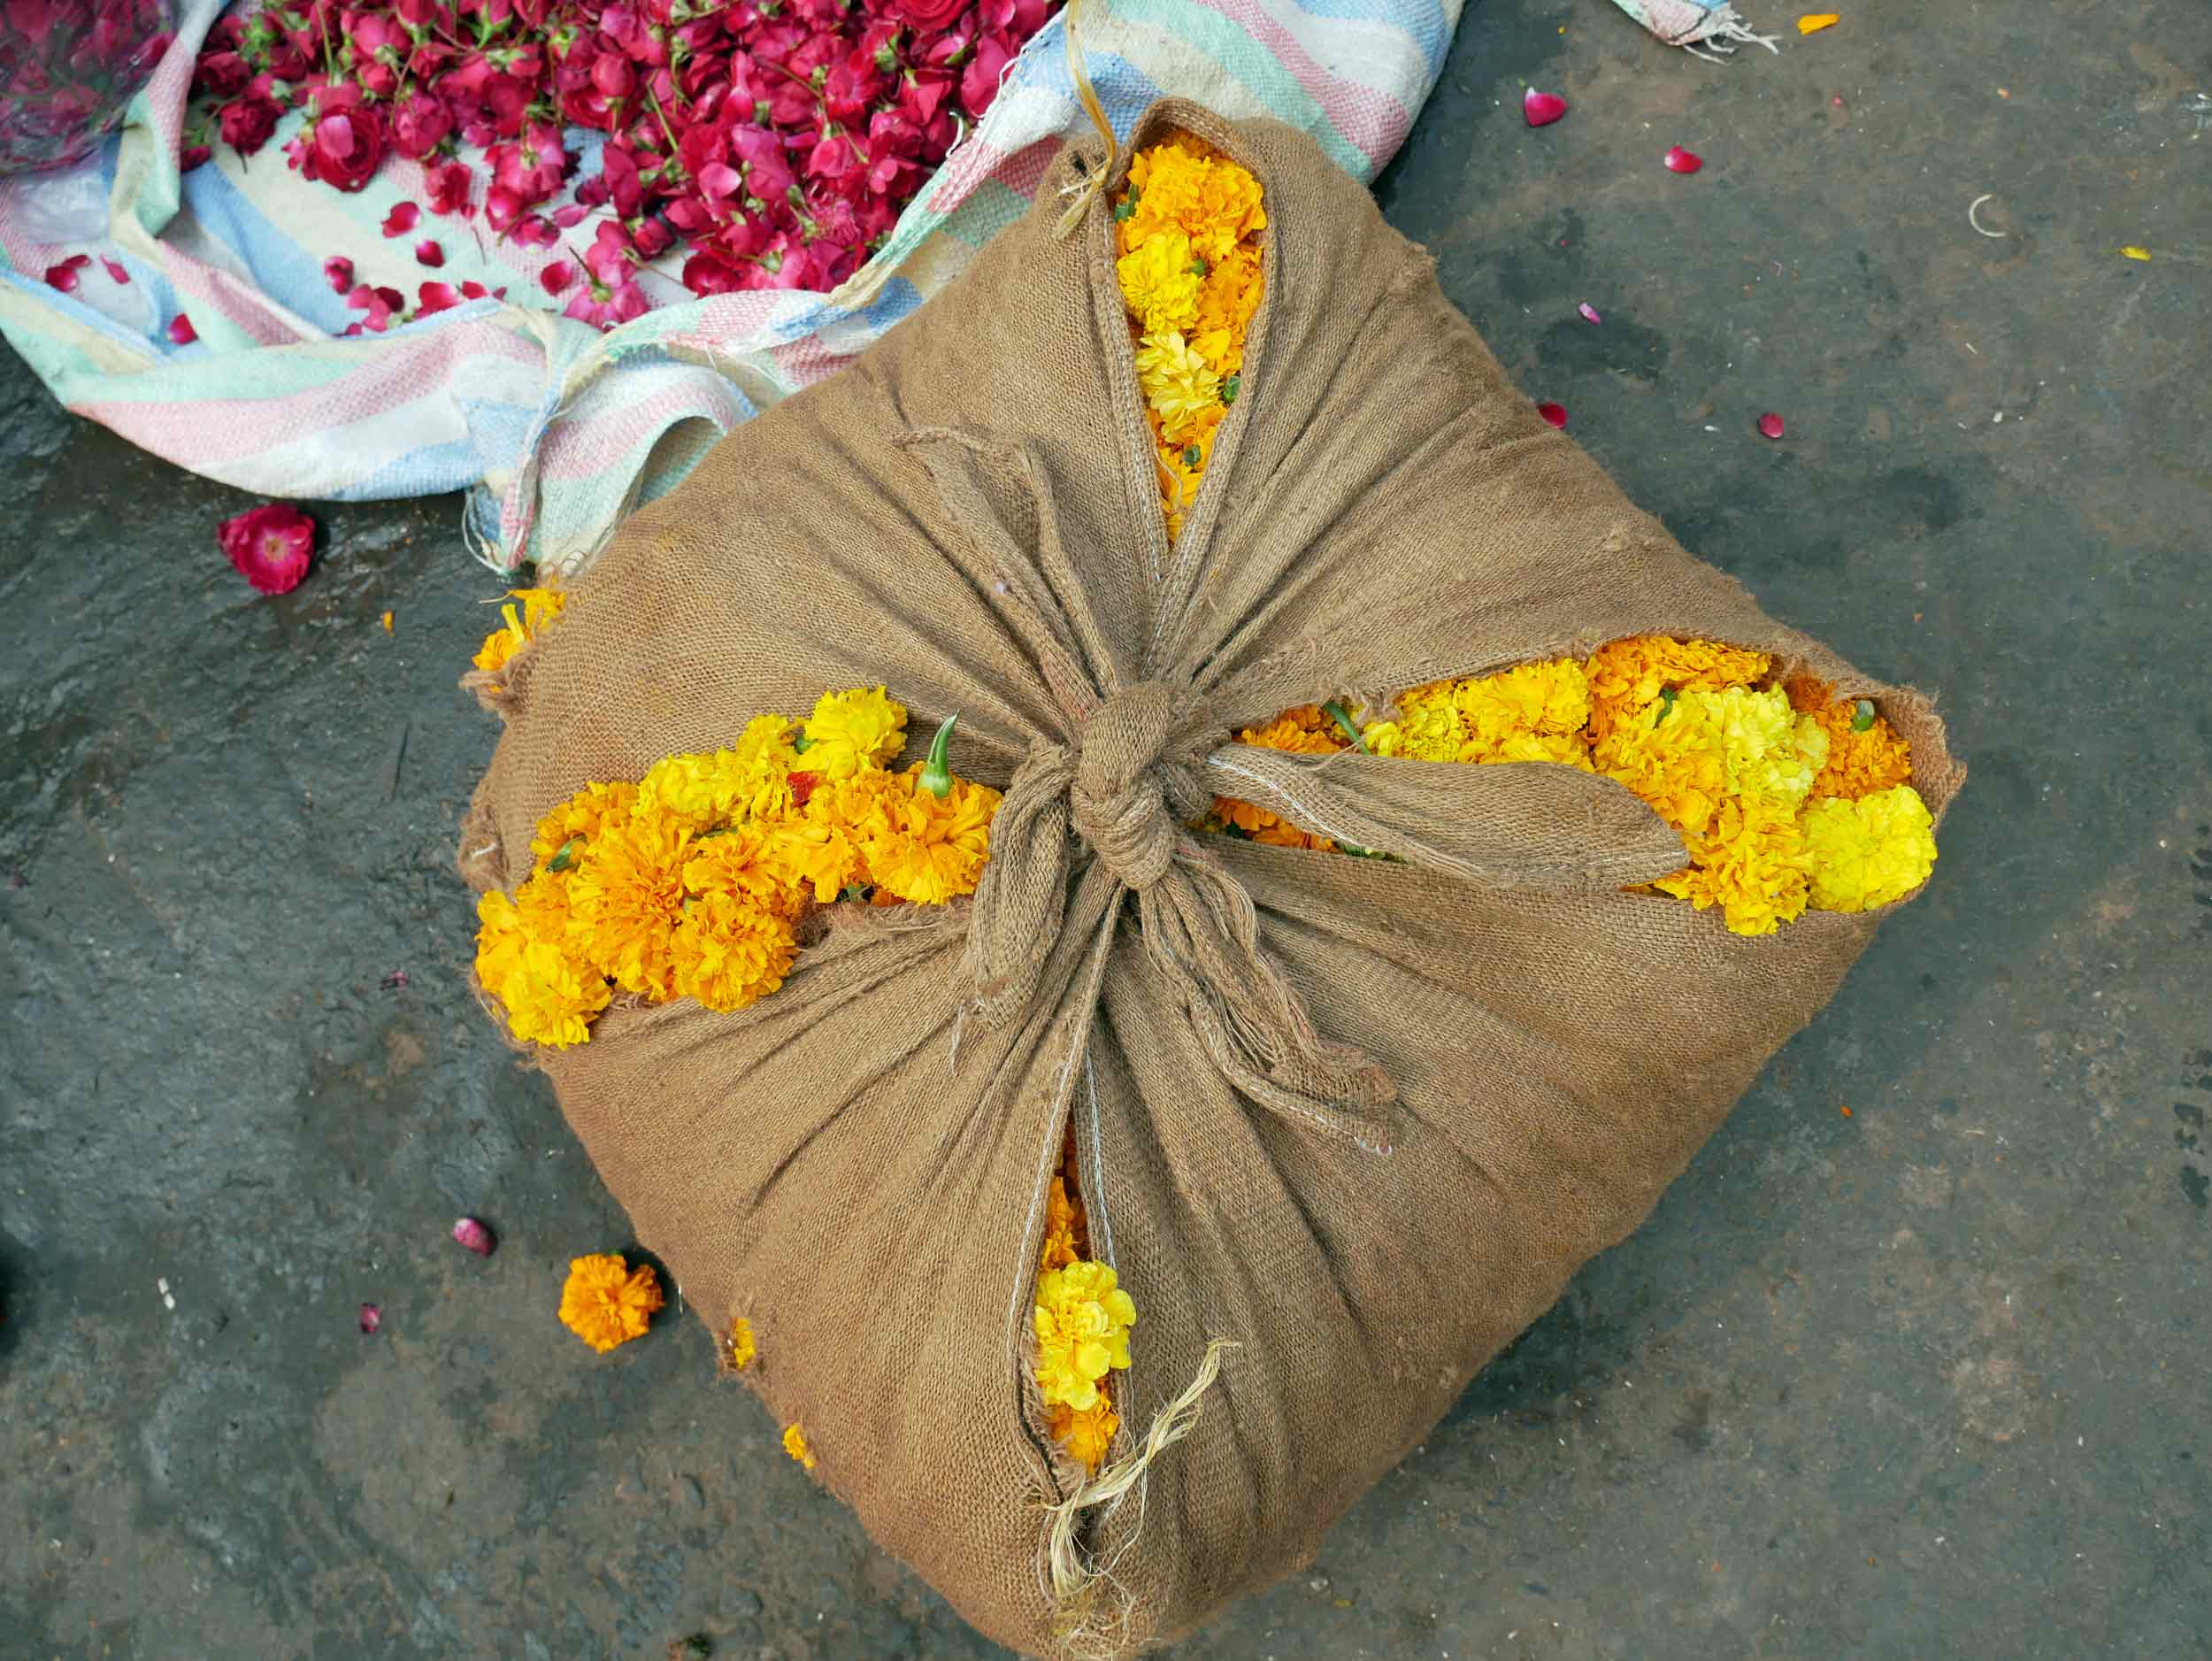 The fragrant flower market of Old Delhi is a sight to behold (and smell!).